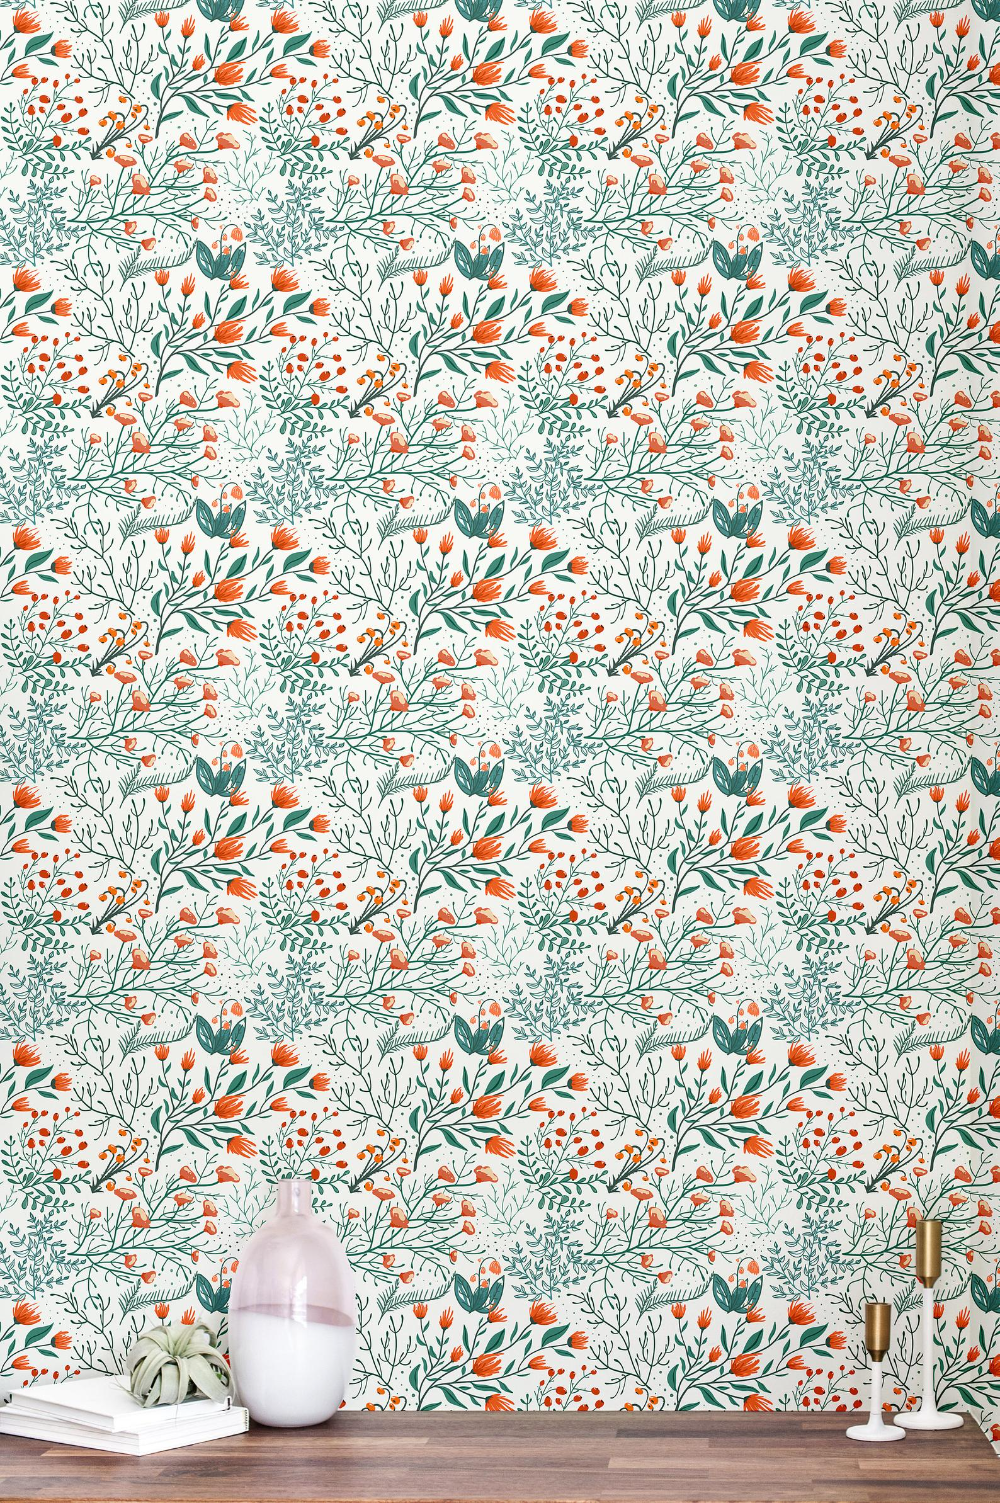 Botanical Peel And Stick Wallpaper Tile Self Adhesive Wallpaper Floral Accent Wall Contact Paper 49 Peel And Stick Wallpaper Self Adhesive Wallpaper Floral Wallpaper